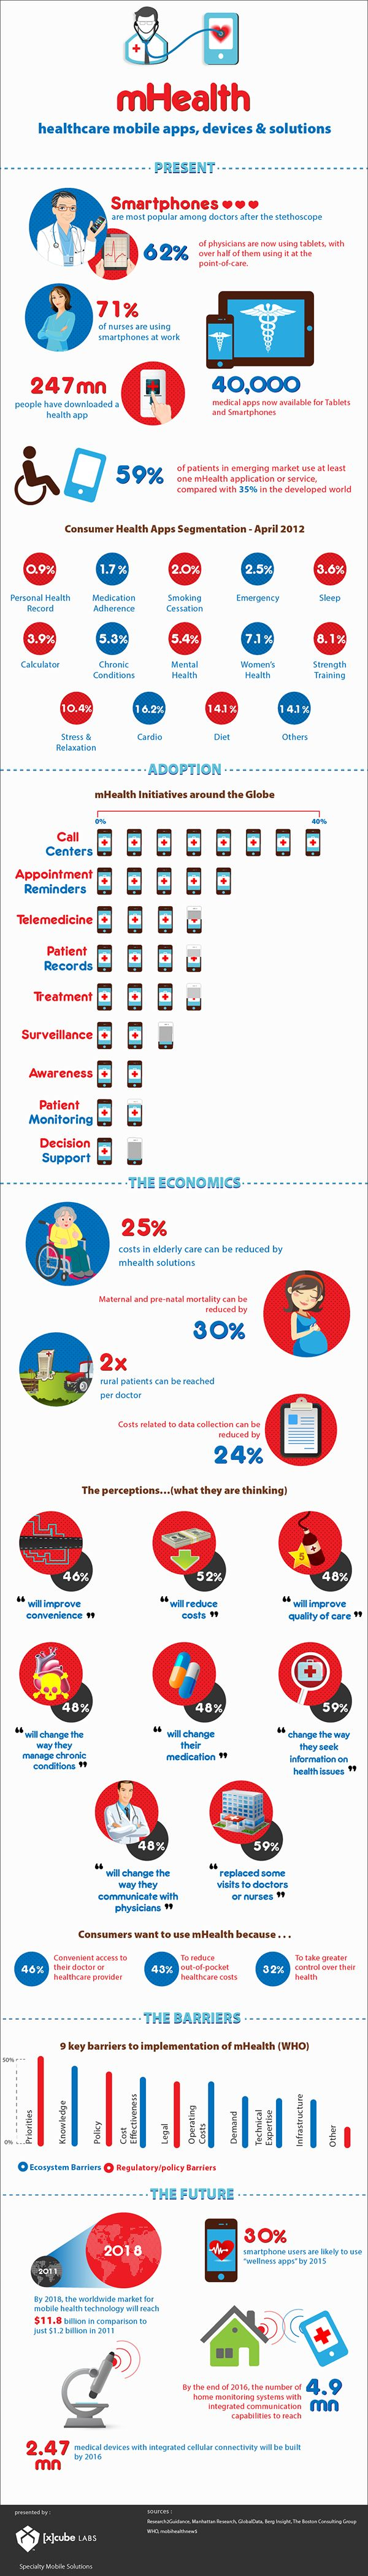 A  detailed infographic on mHealth covering the present & future of healthcare mobility solutions, adoption rates of mobility in healthcare, consumer attitude towards mobile health and challenges in its full-scale implementation.